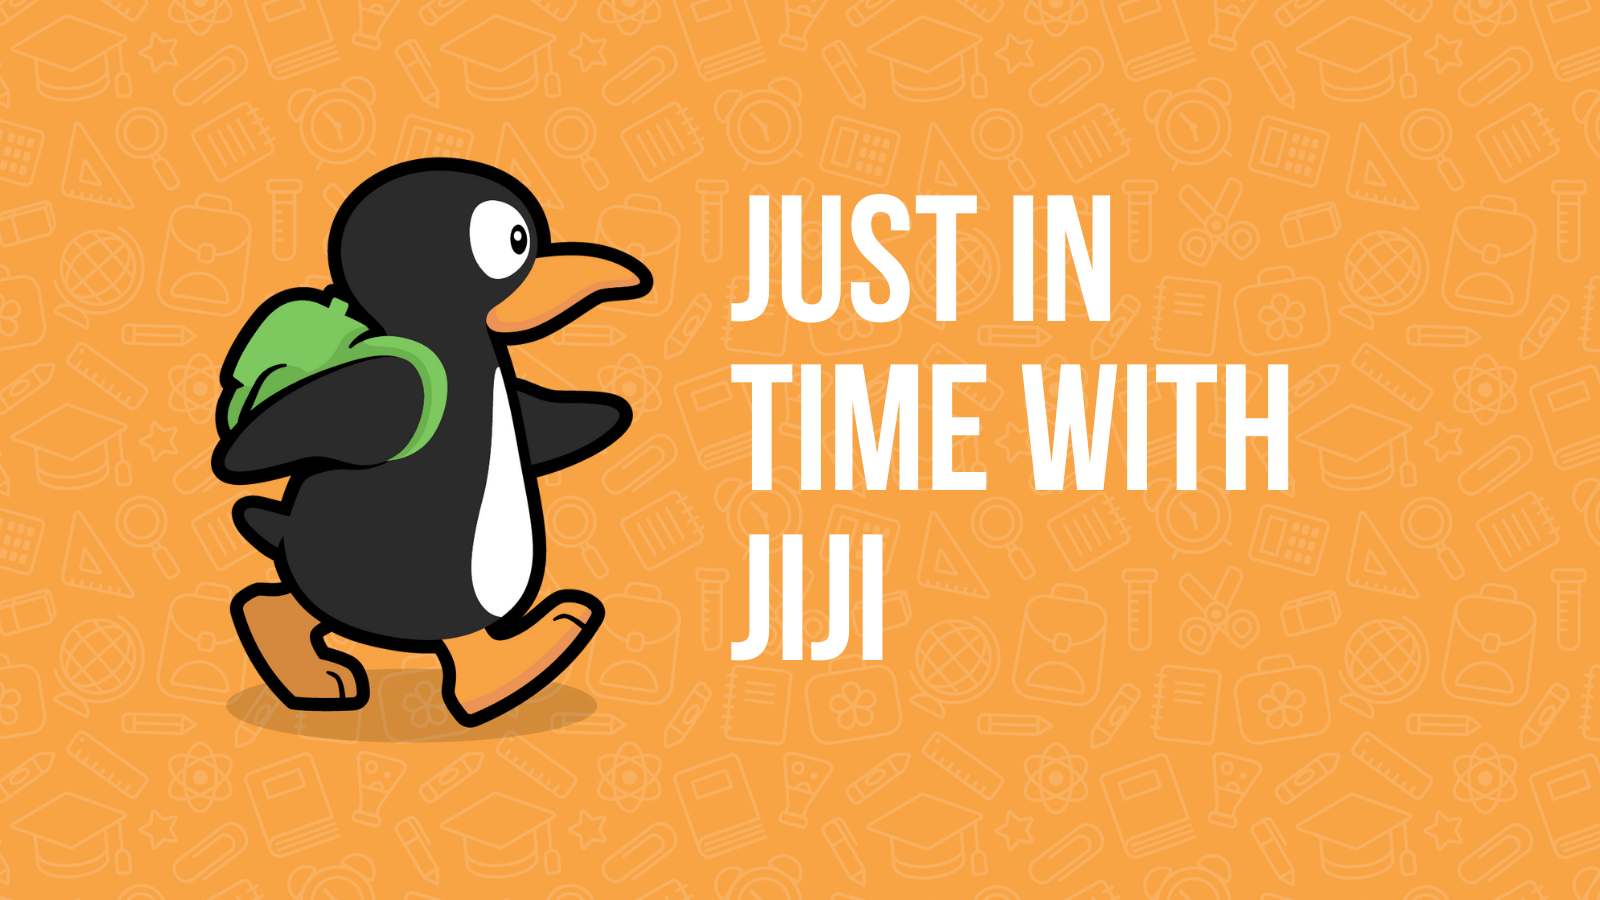 August Updates: Just in Time with JiJi